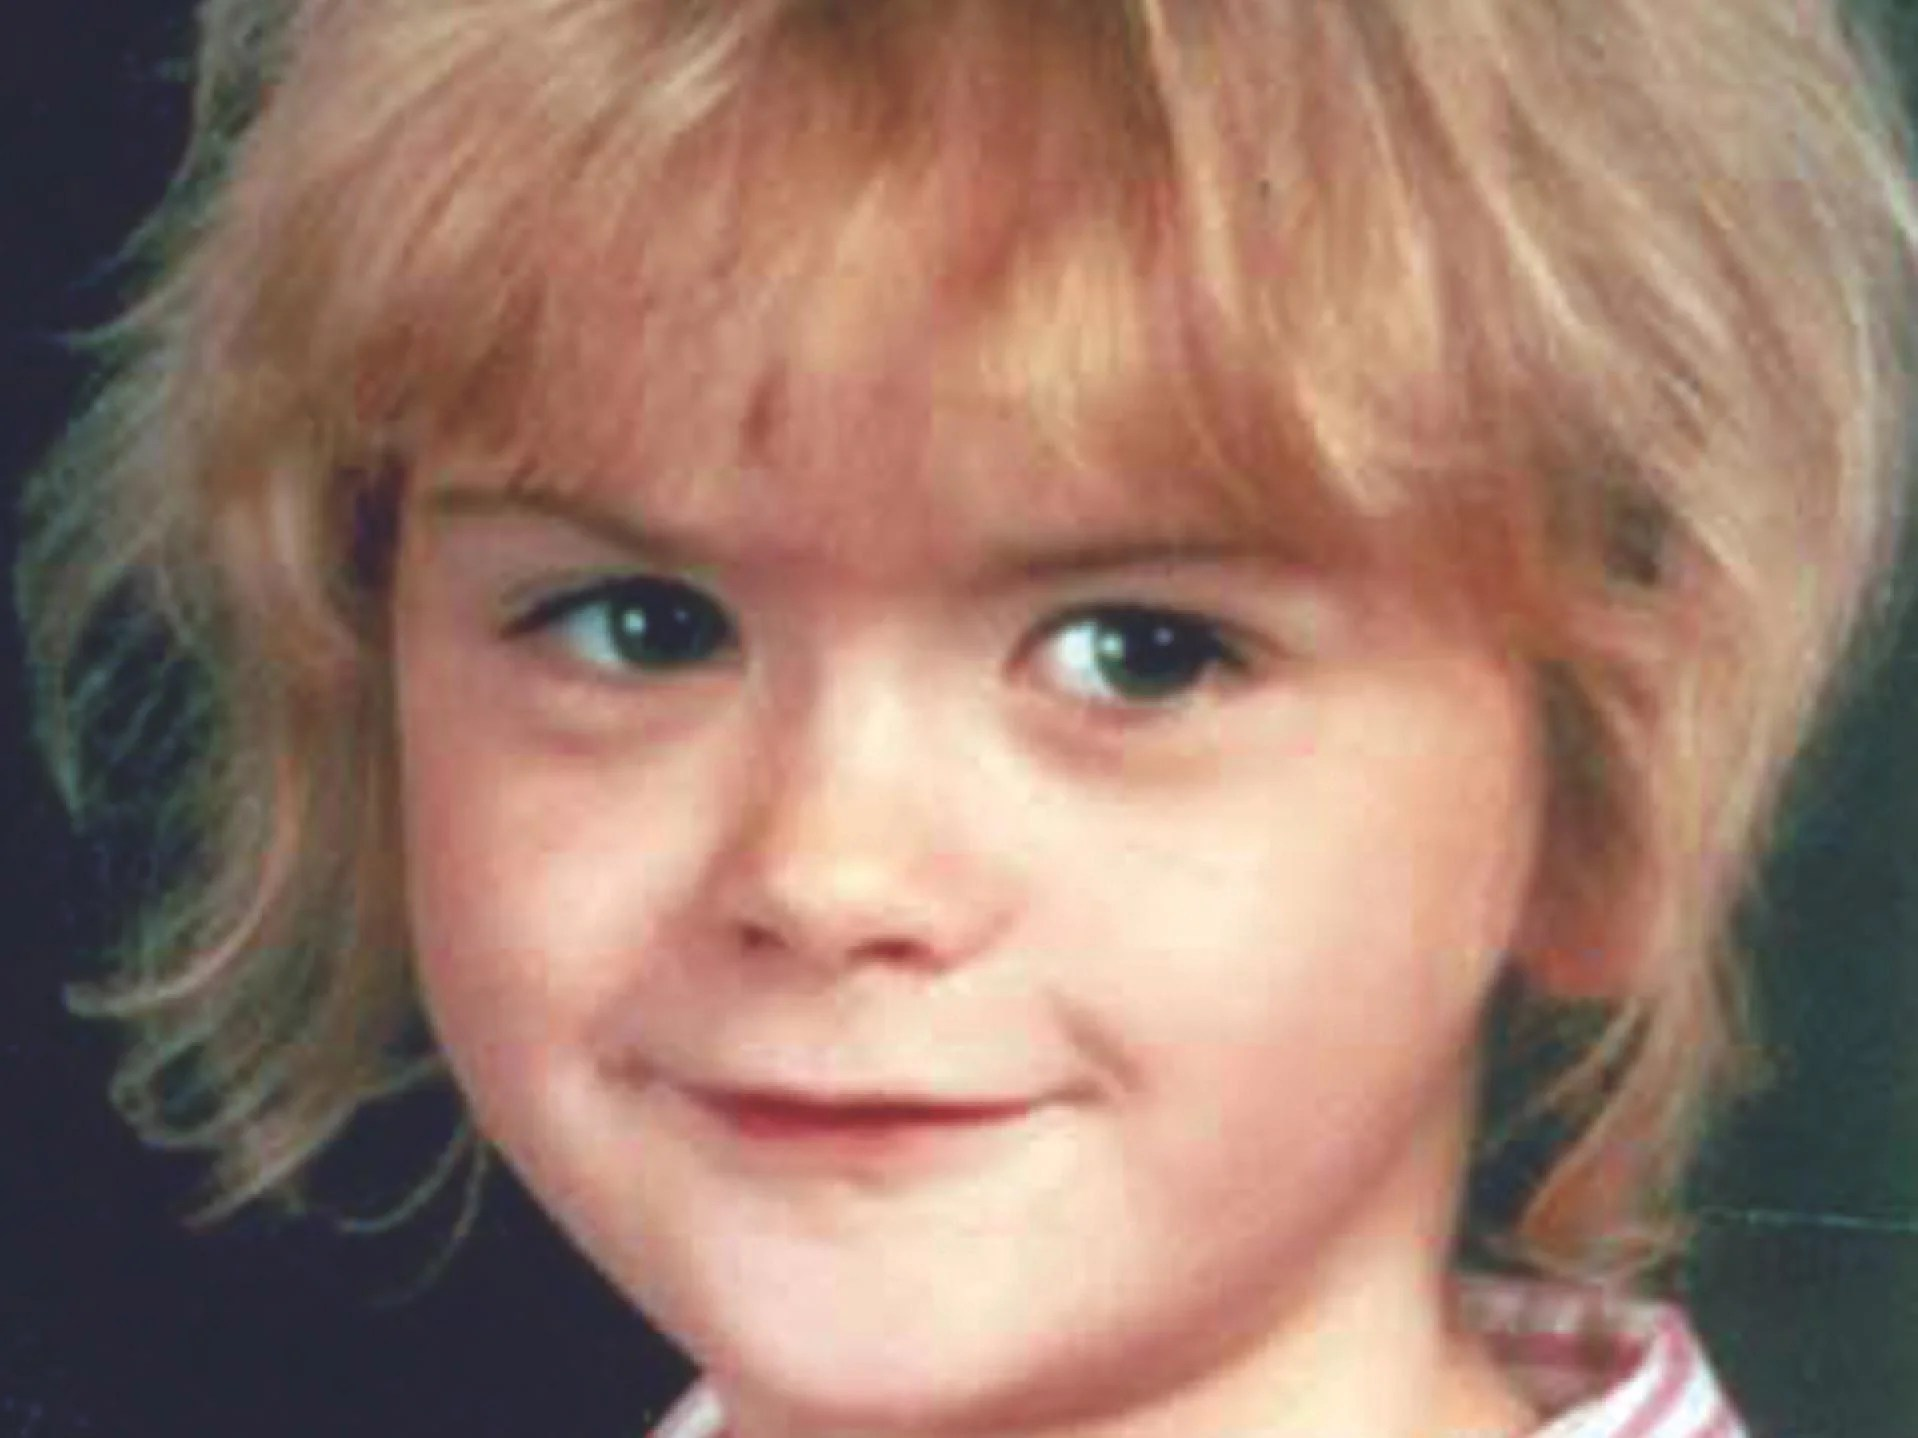 The murder of 8-year-old April Tinsley frustrated investigators for decades and attracted intense media attention